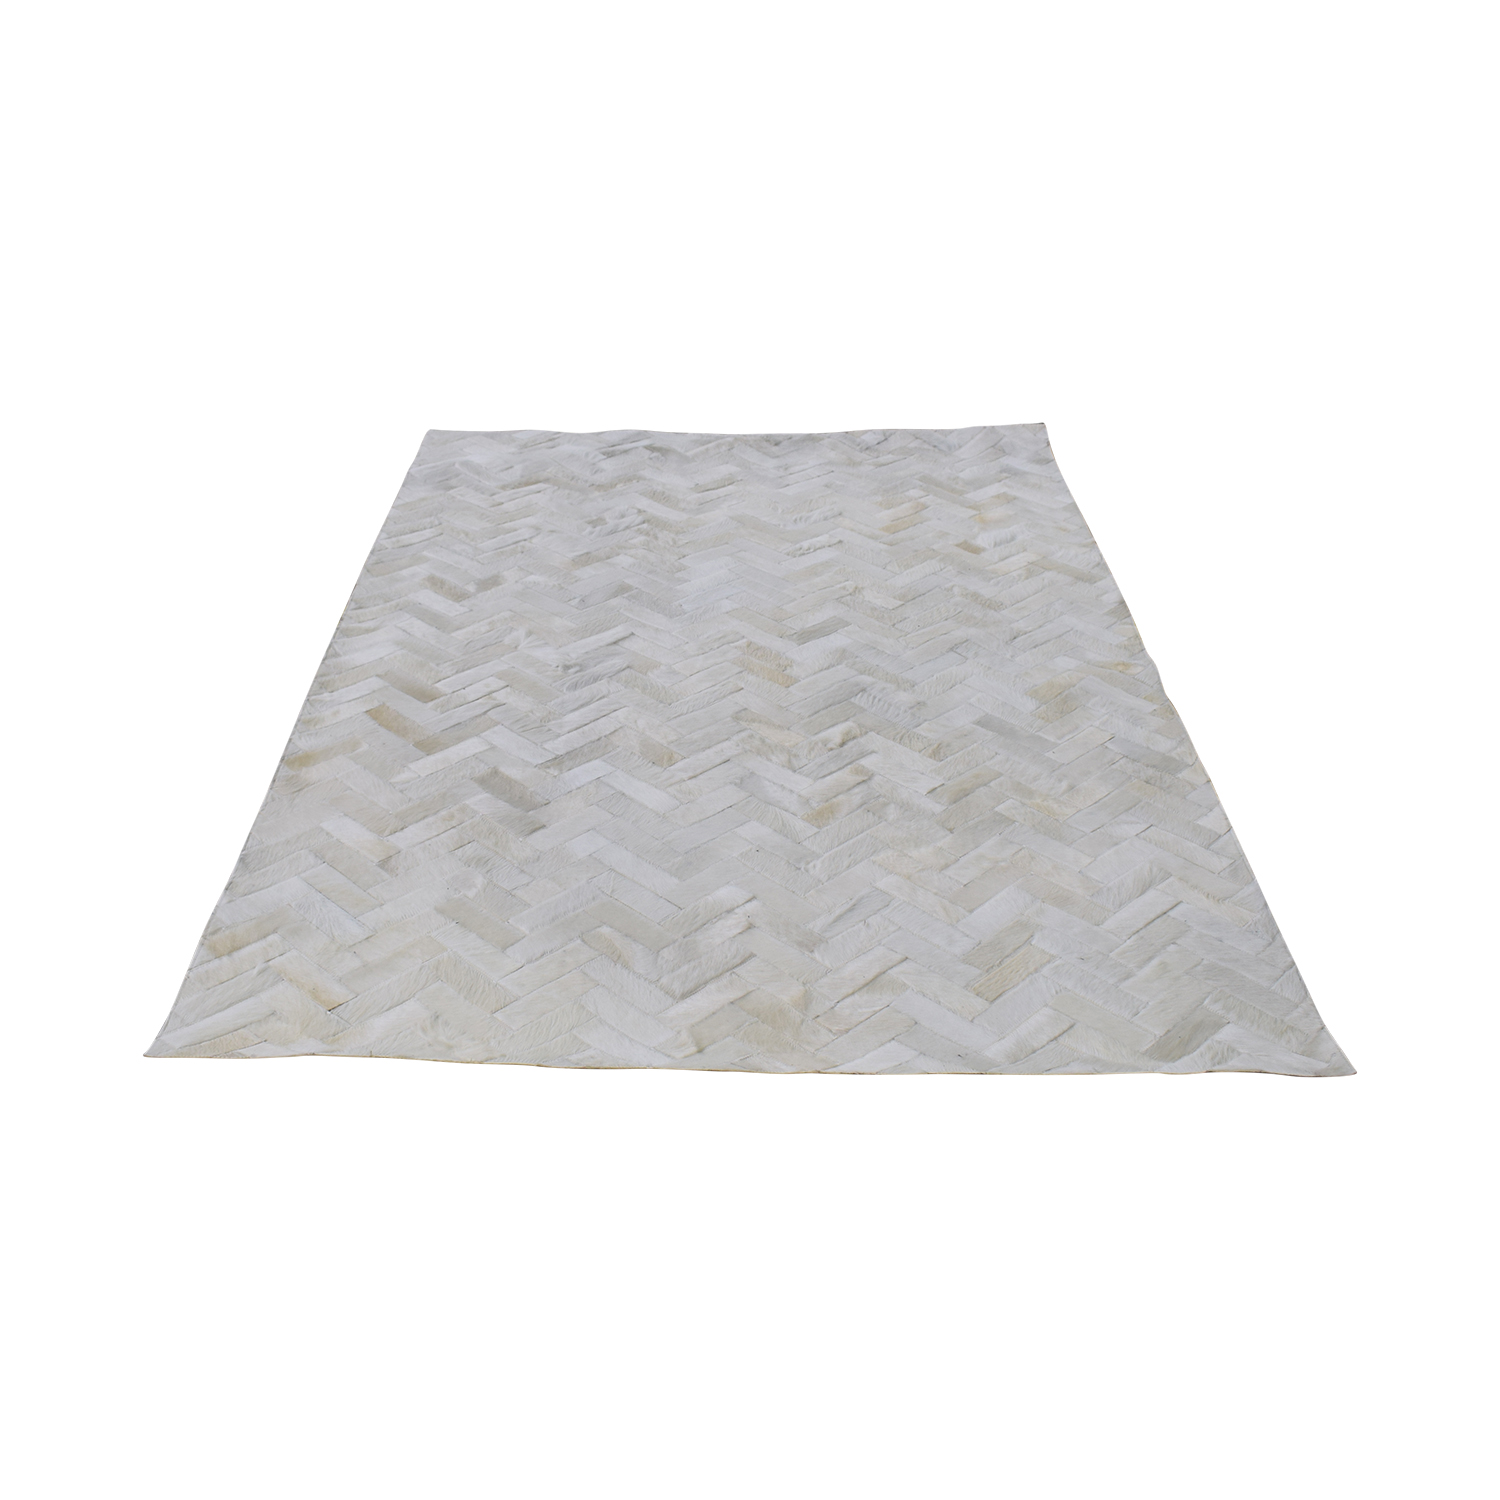 West Elm Pieced + Patched Cowhide Rug / Rugs